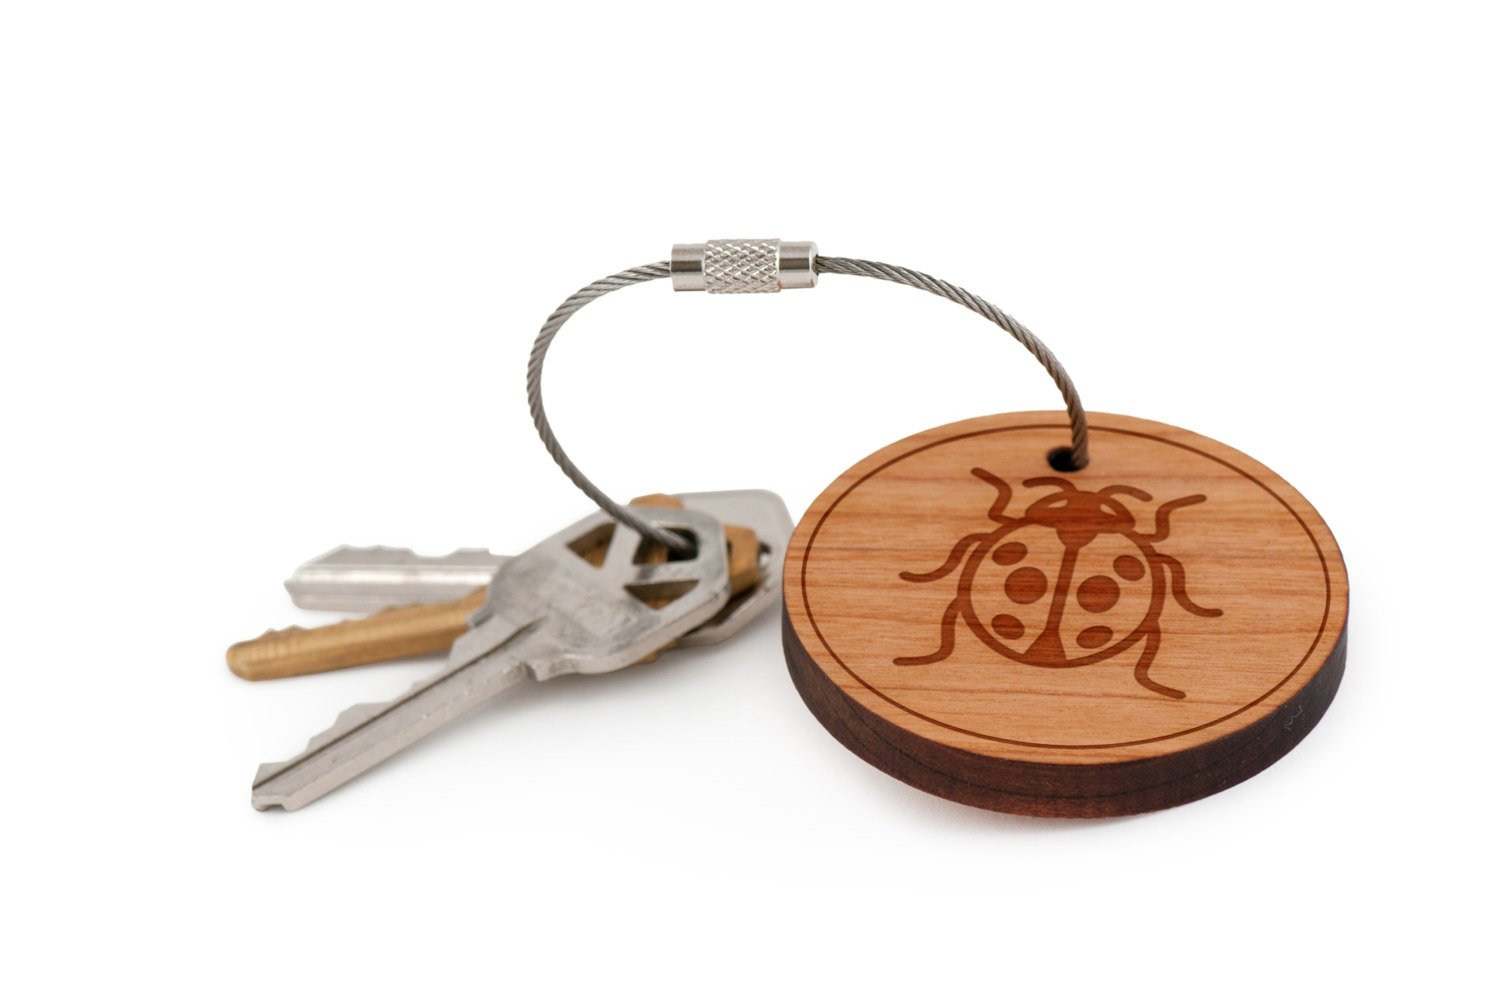 Ladybug Keychain, Wood Twist Cable Keychain - Small WoodenAccessoriesCo